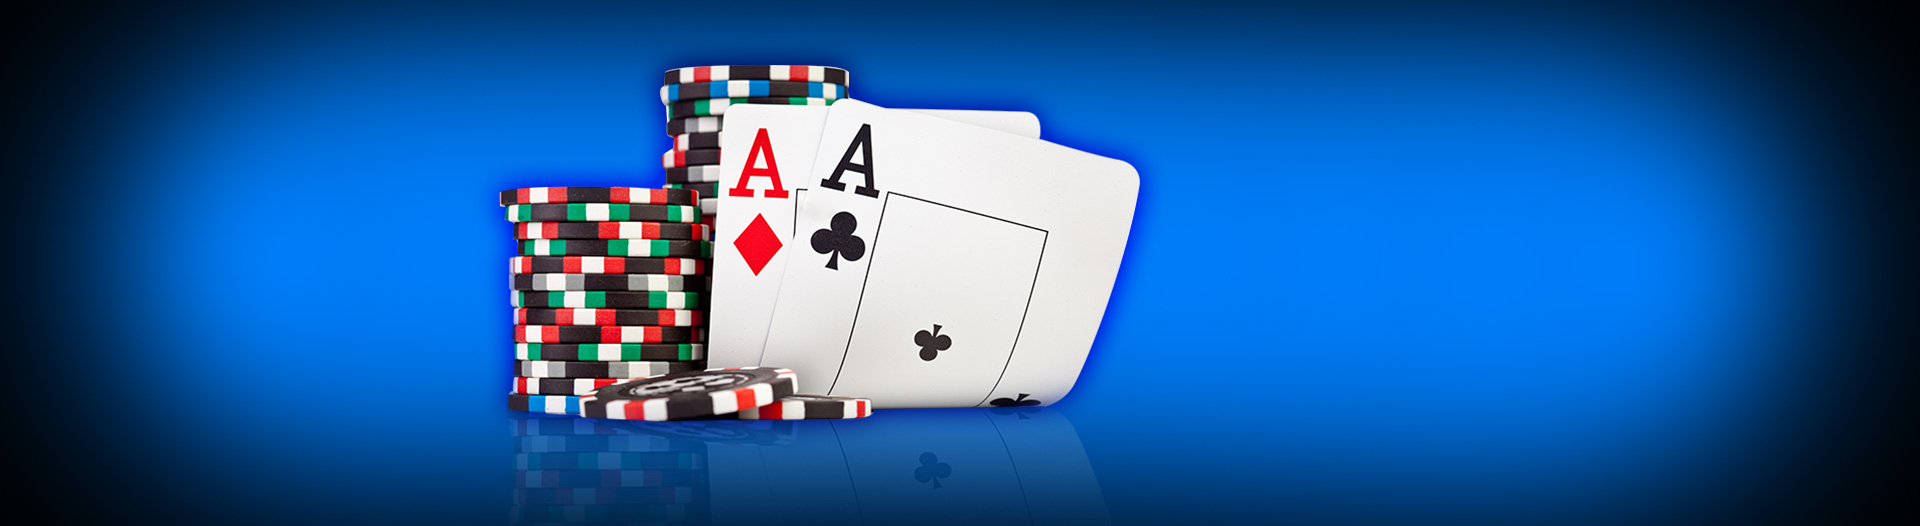 casino online poker online casino deutsch